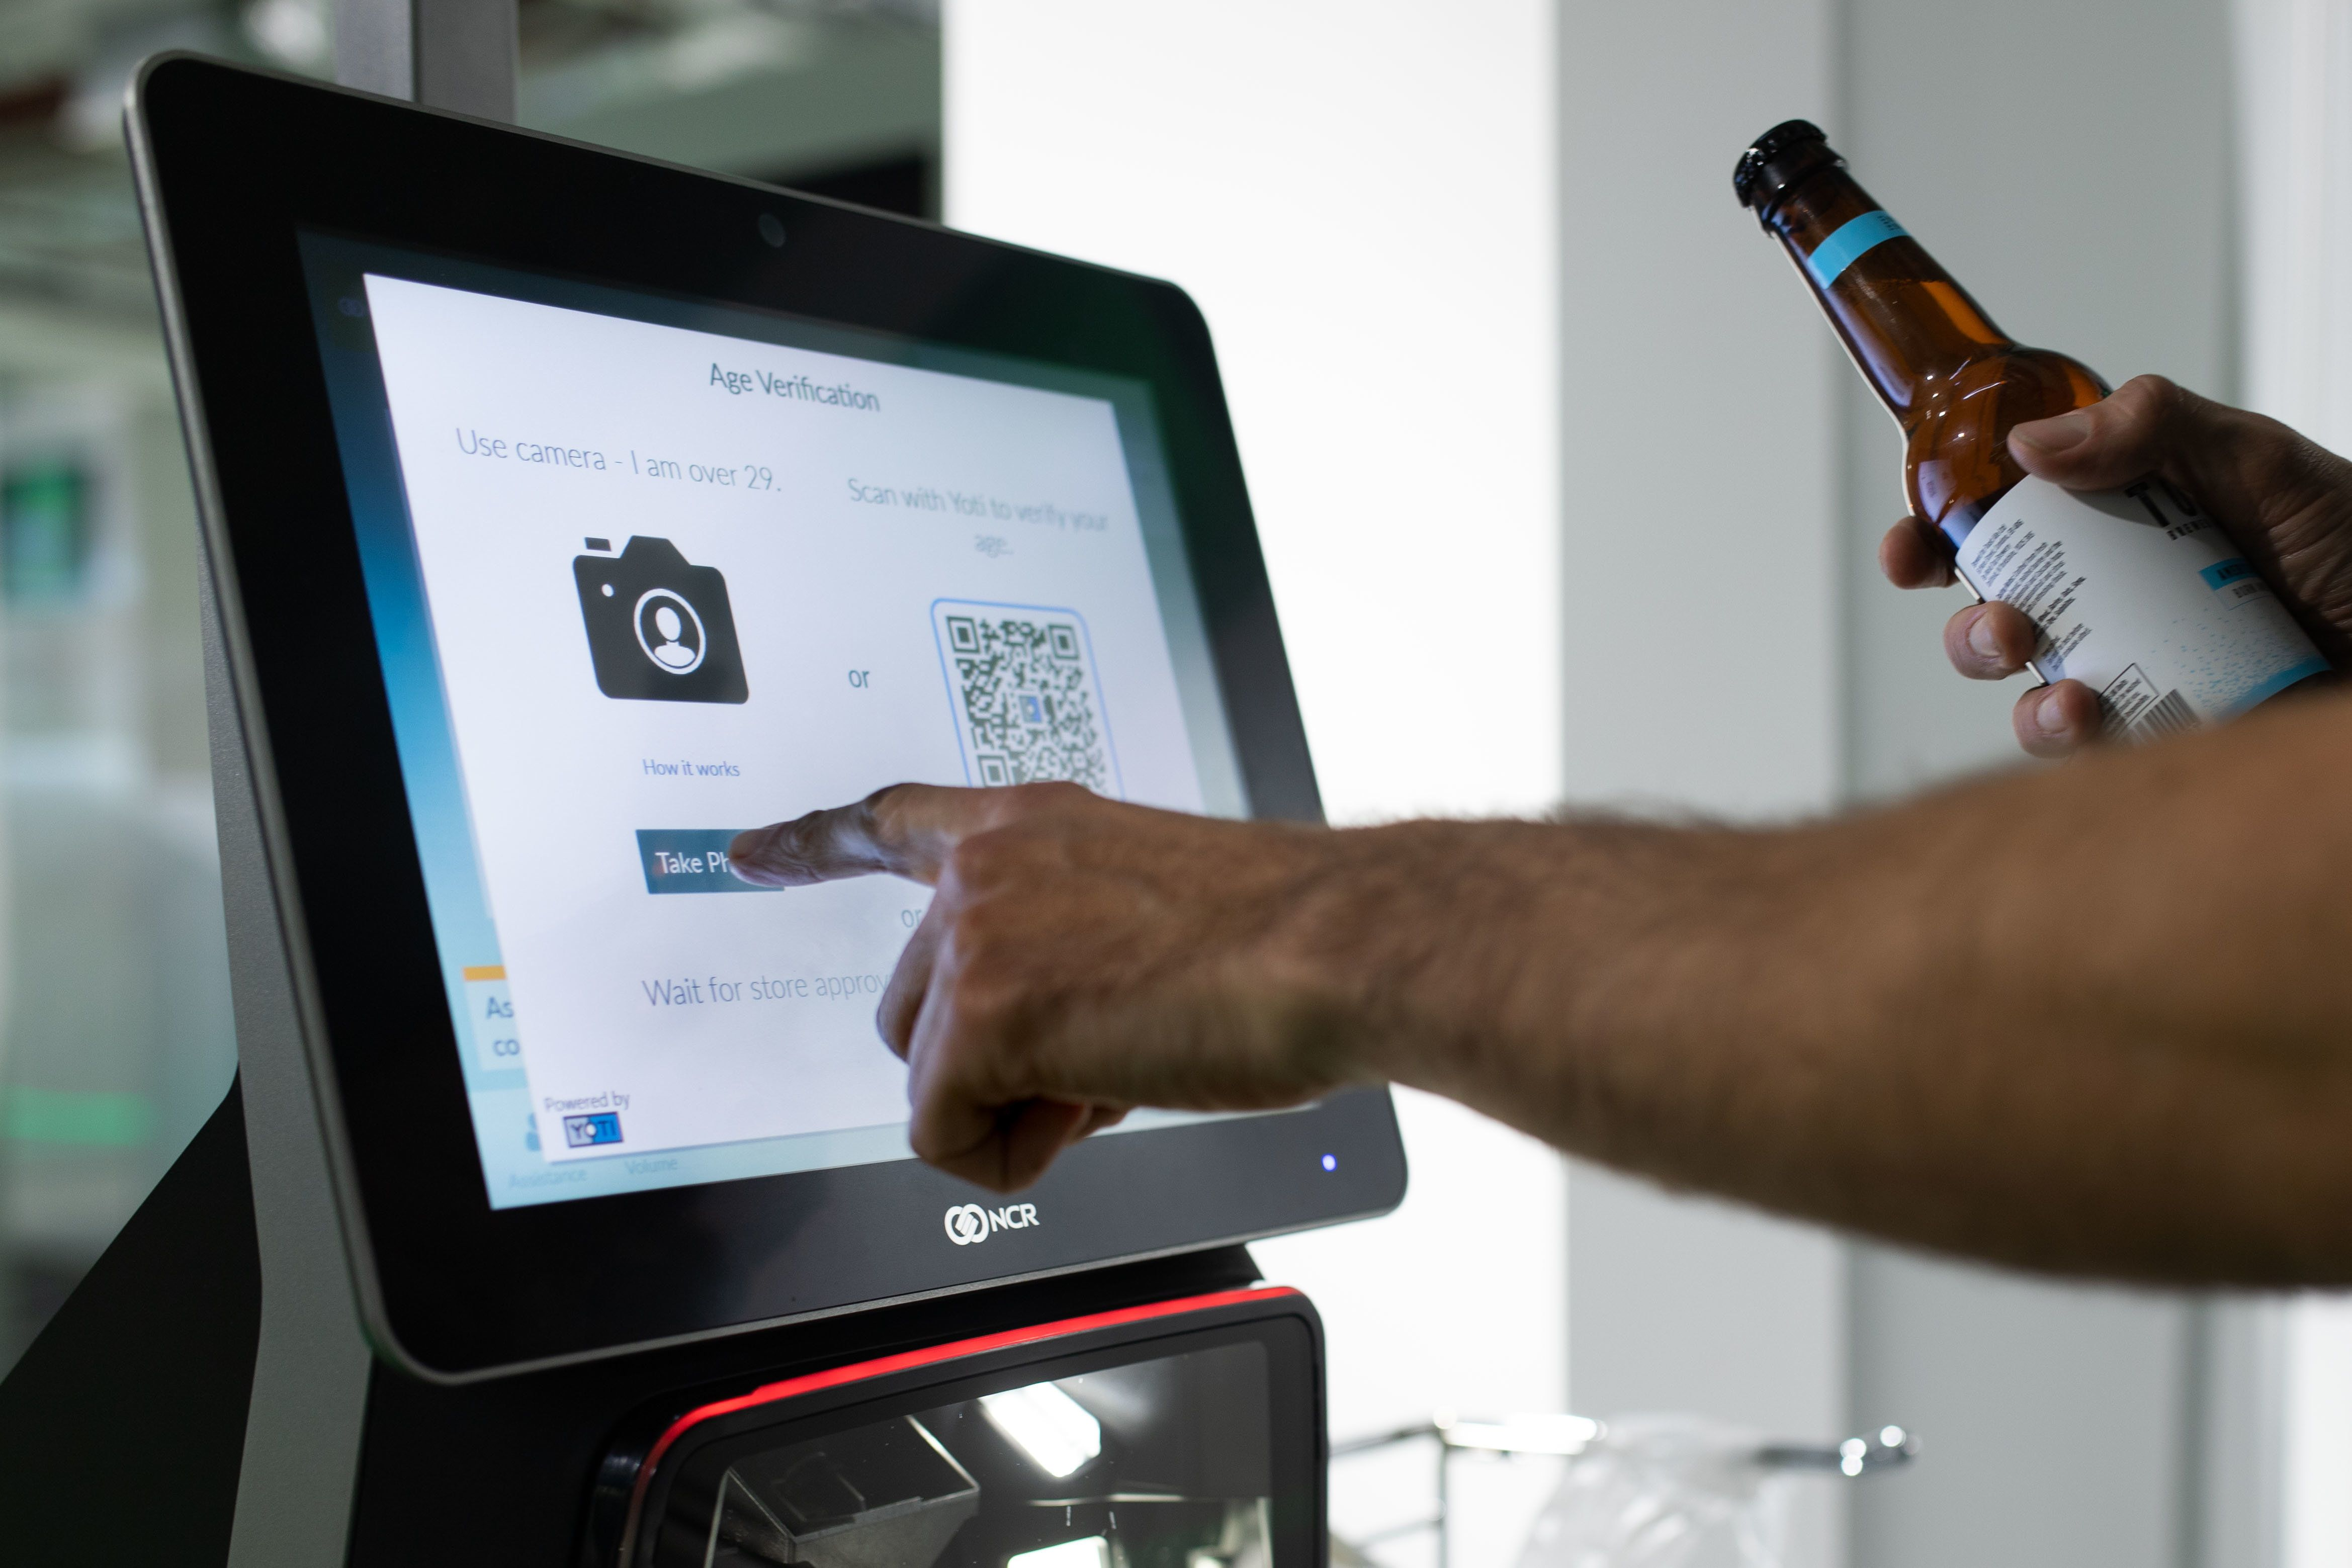 Self-Service Checkouts Will Start Using Facial Recognition To Decide If You're Over